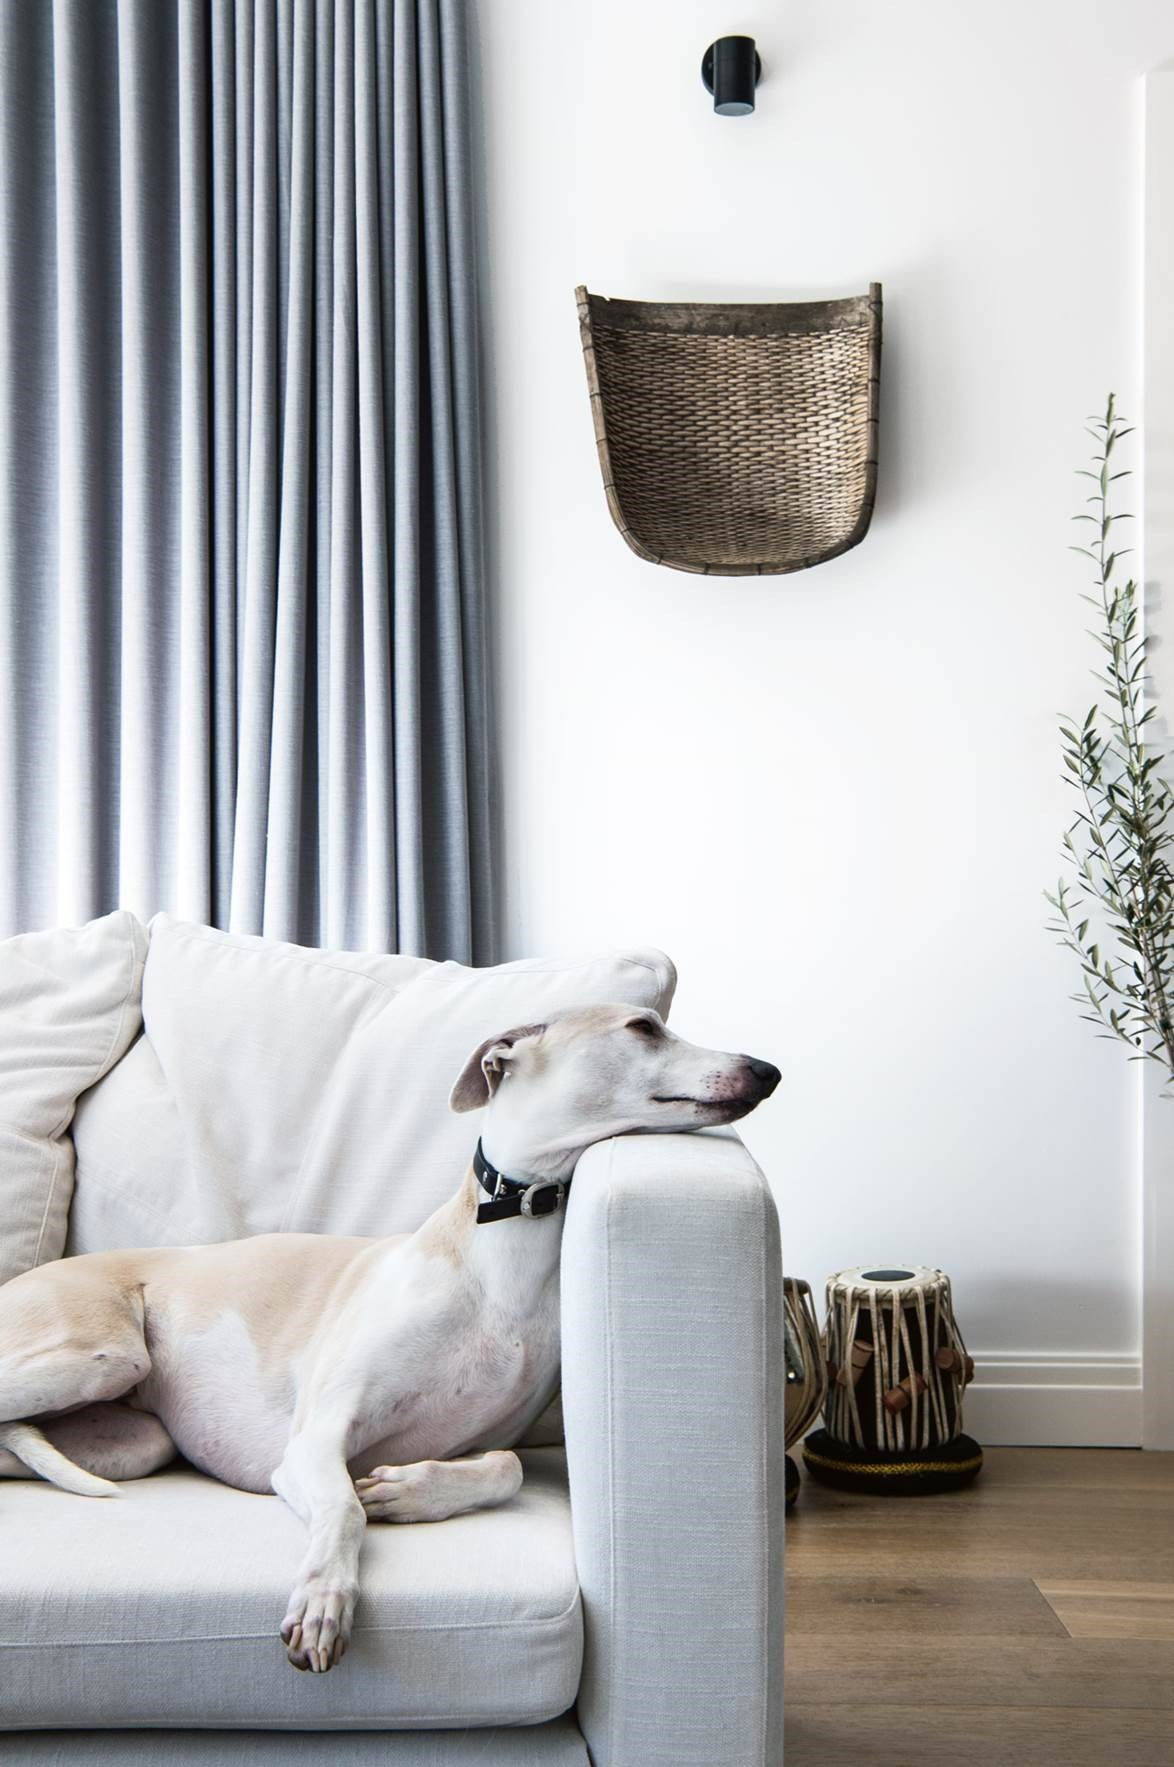 Toby the whippet truly looks at home lounging on the sofa in this Blue Mountains abode.